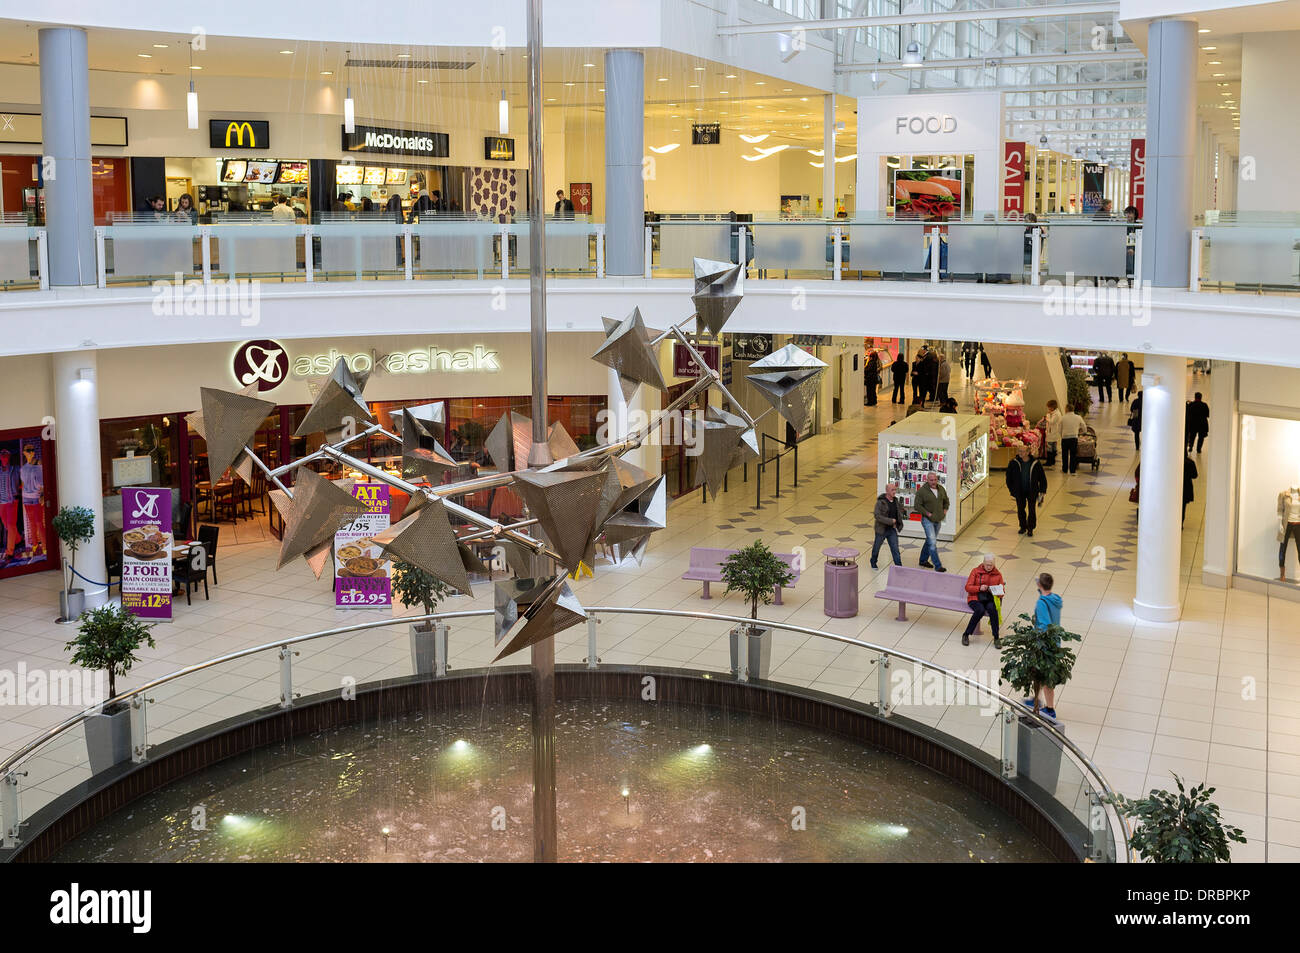 Interior of the Designer shopping mall, with the central foyer's water fountain, Livingstone, Edinburgh, Scotland, Great Britain - Stock Image